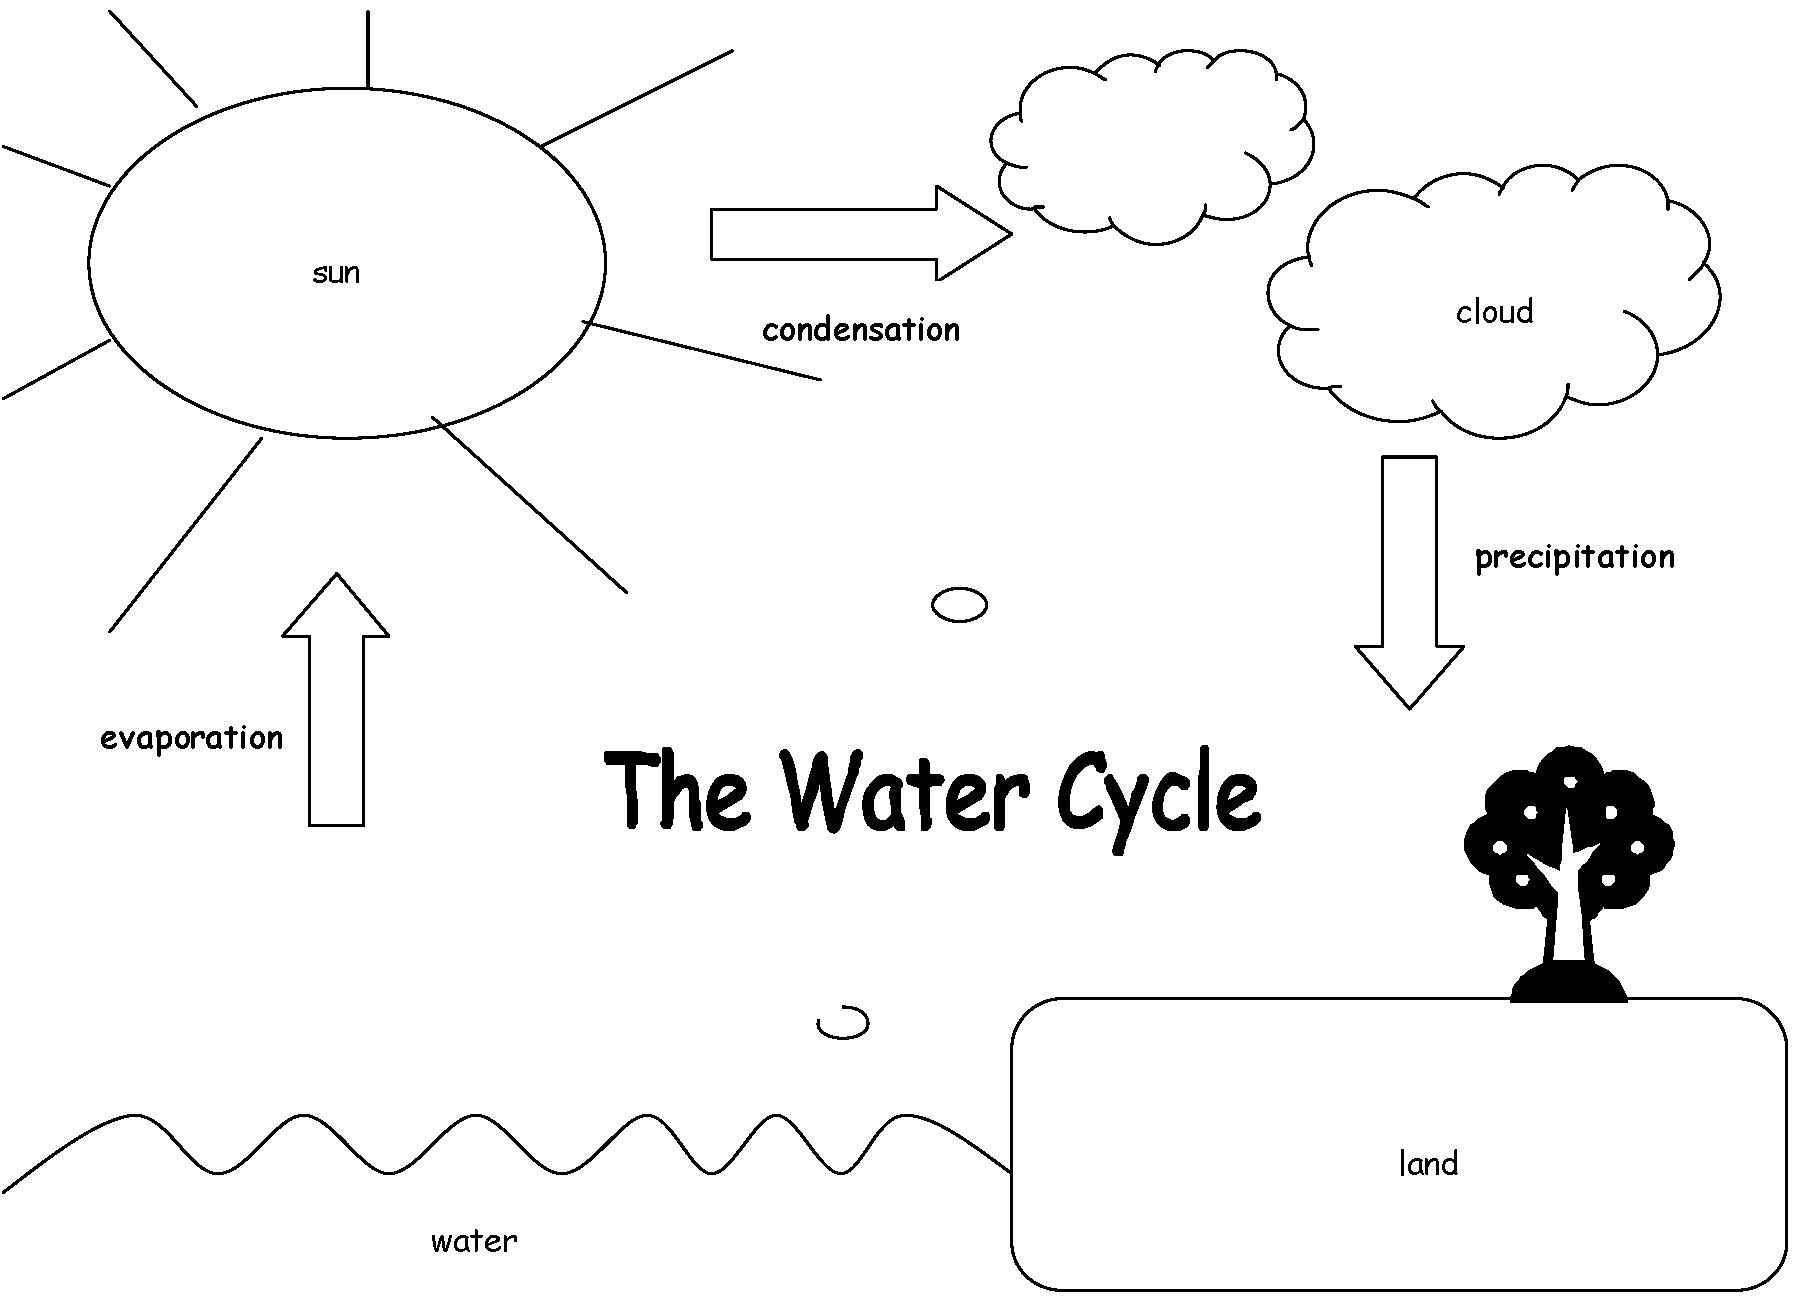 science diagrams for class 8 polk audio subwoofer wiring diagram water cycle coloring pages the